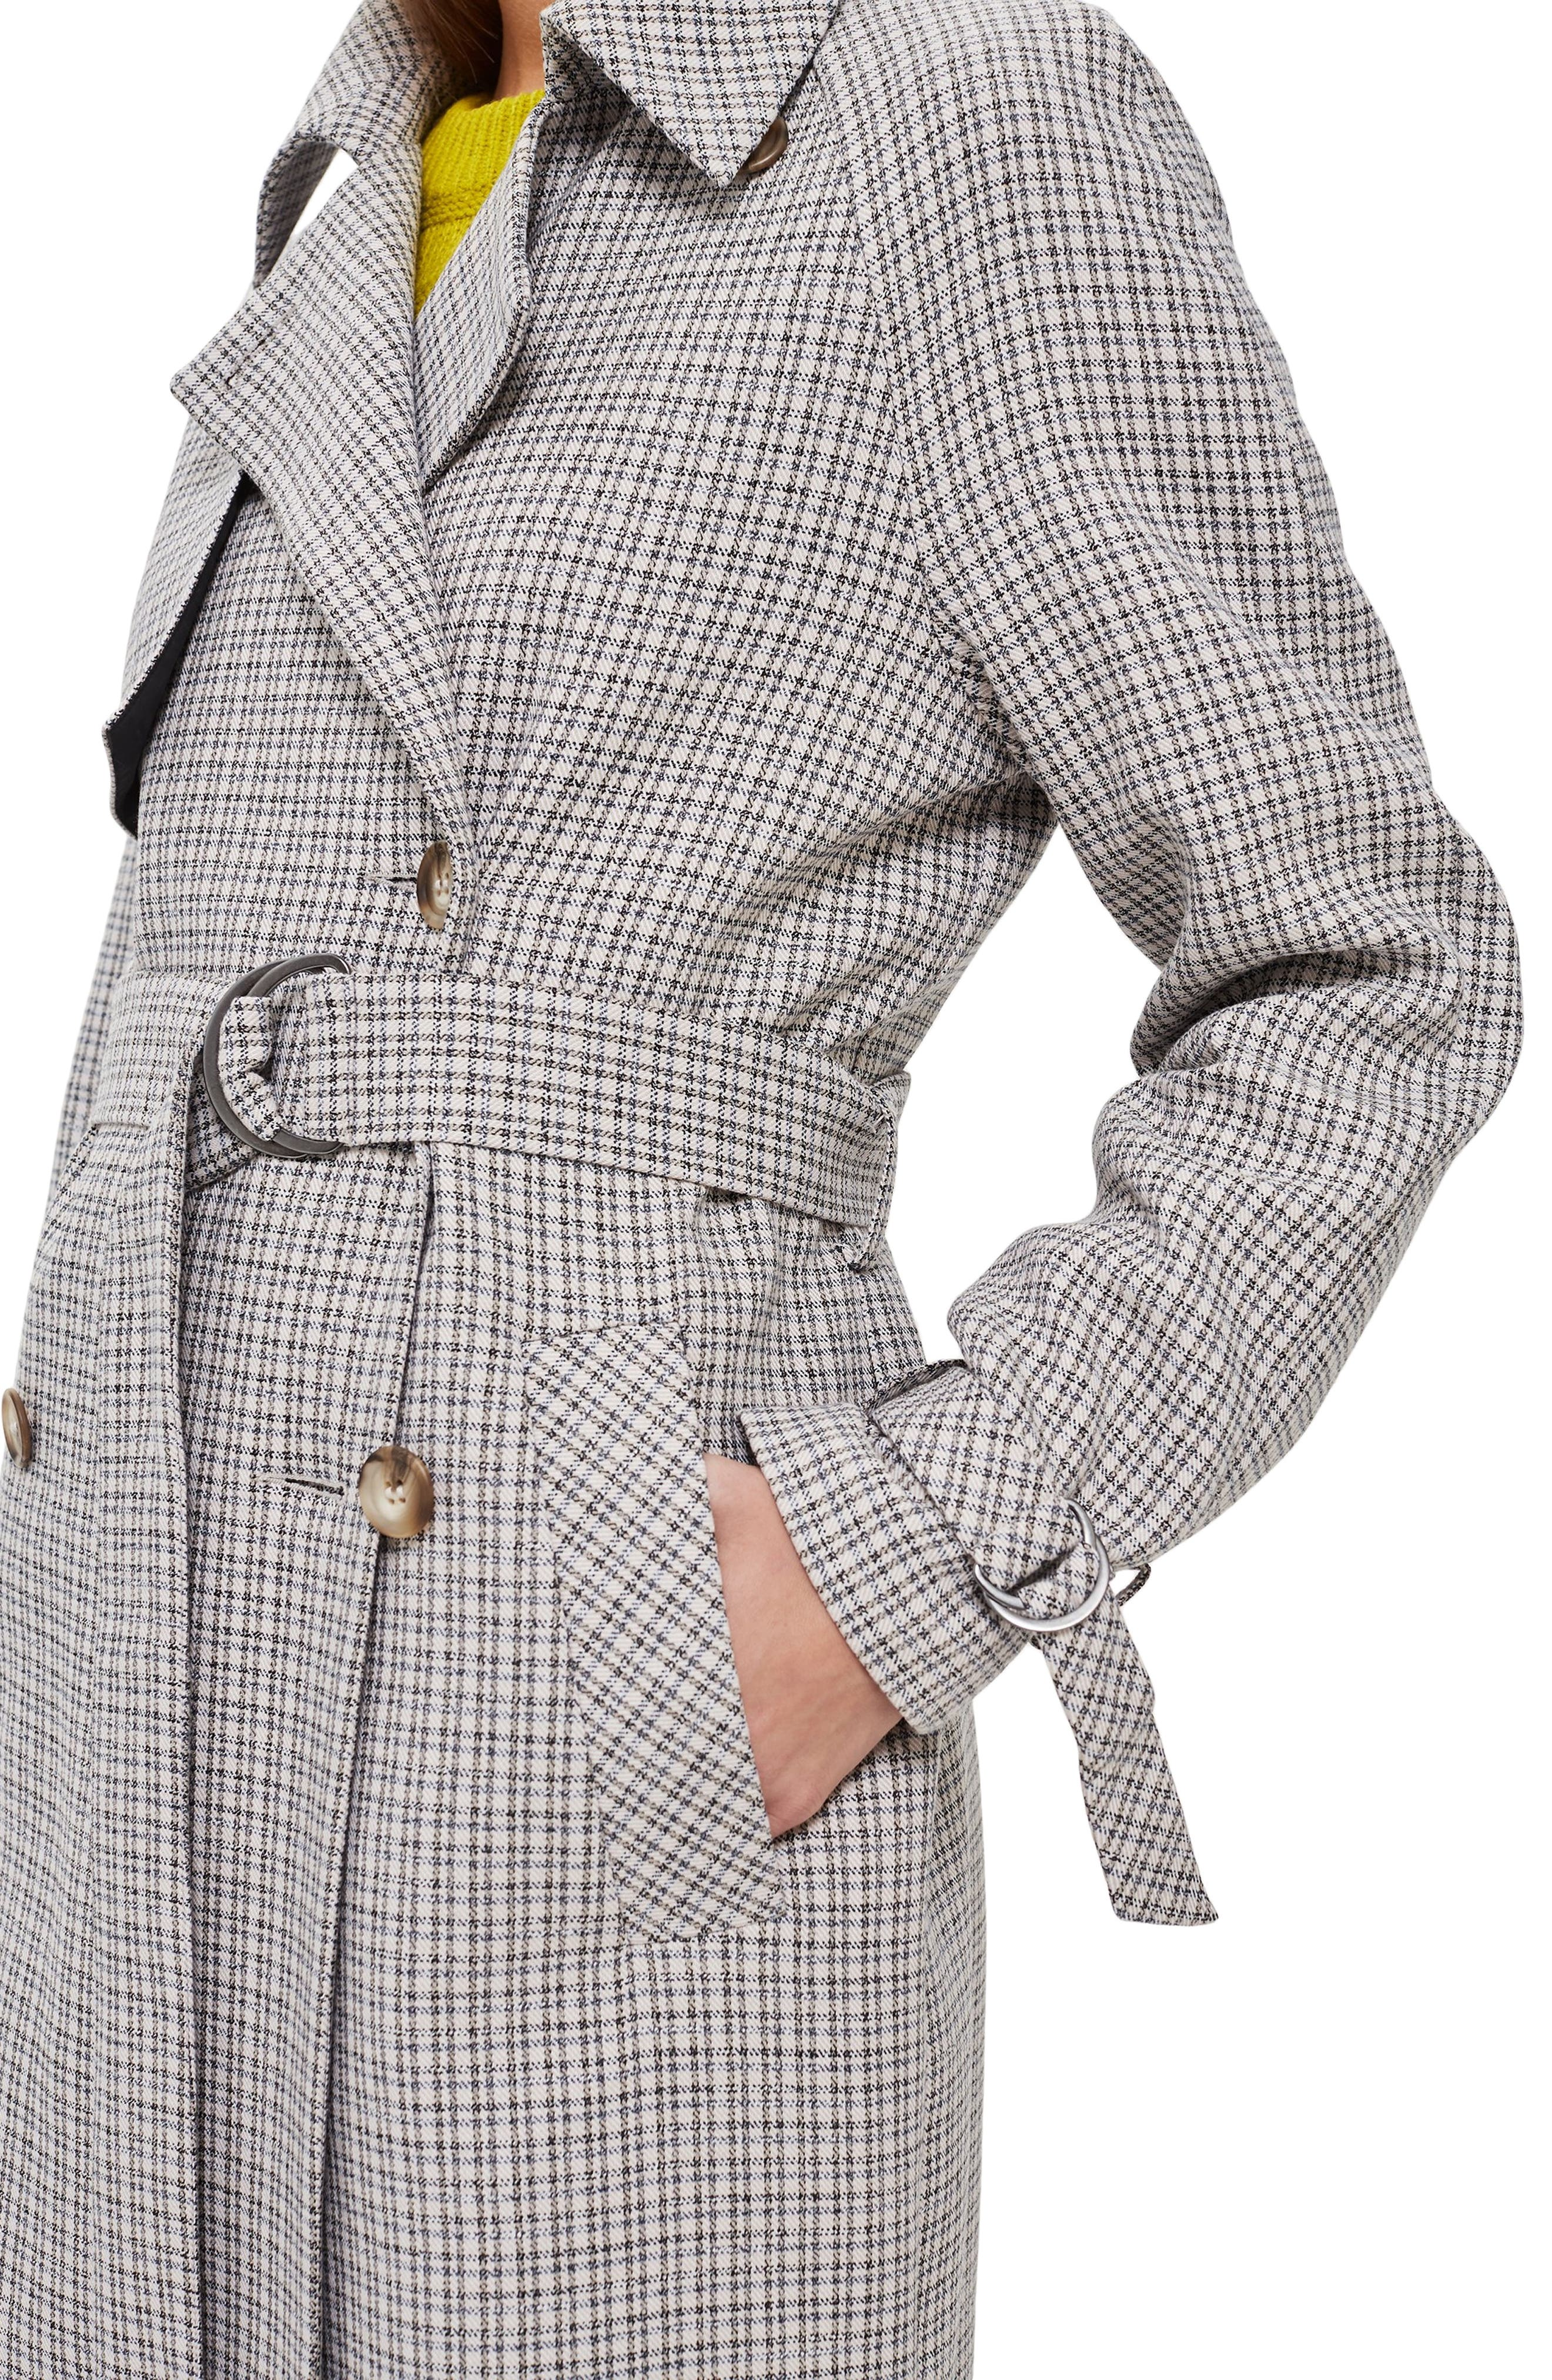 Angie Trench Coat,                             Alternate thumbnail 4, color,                             020